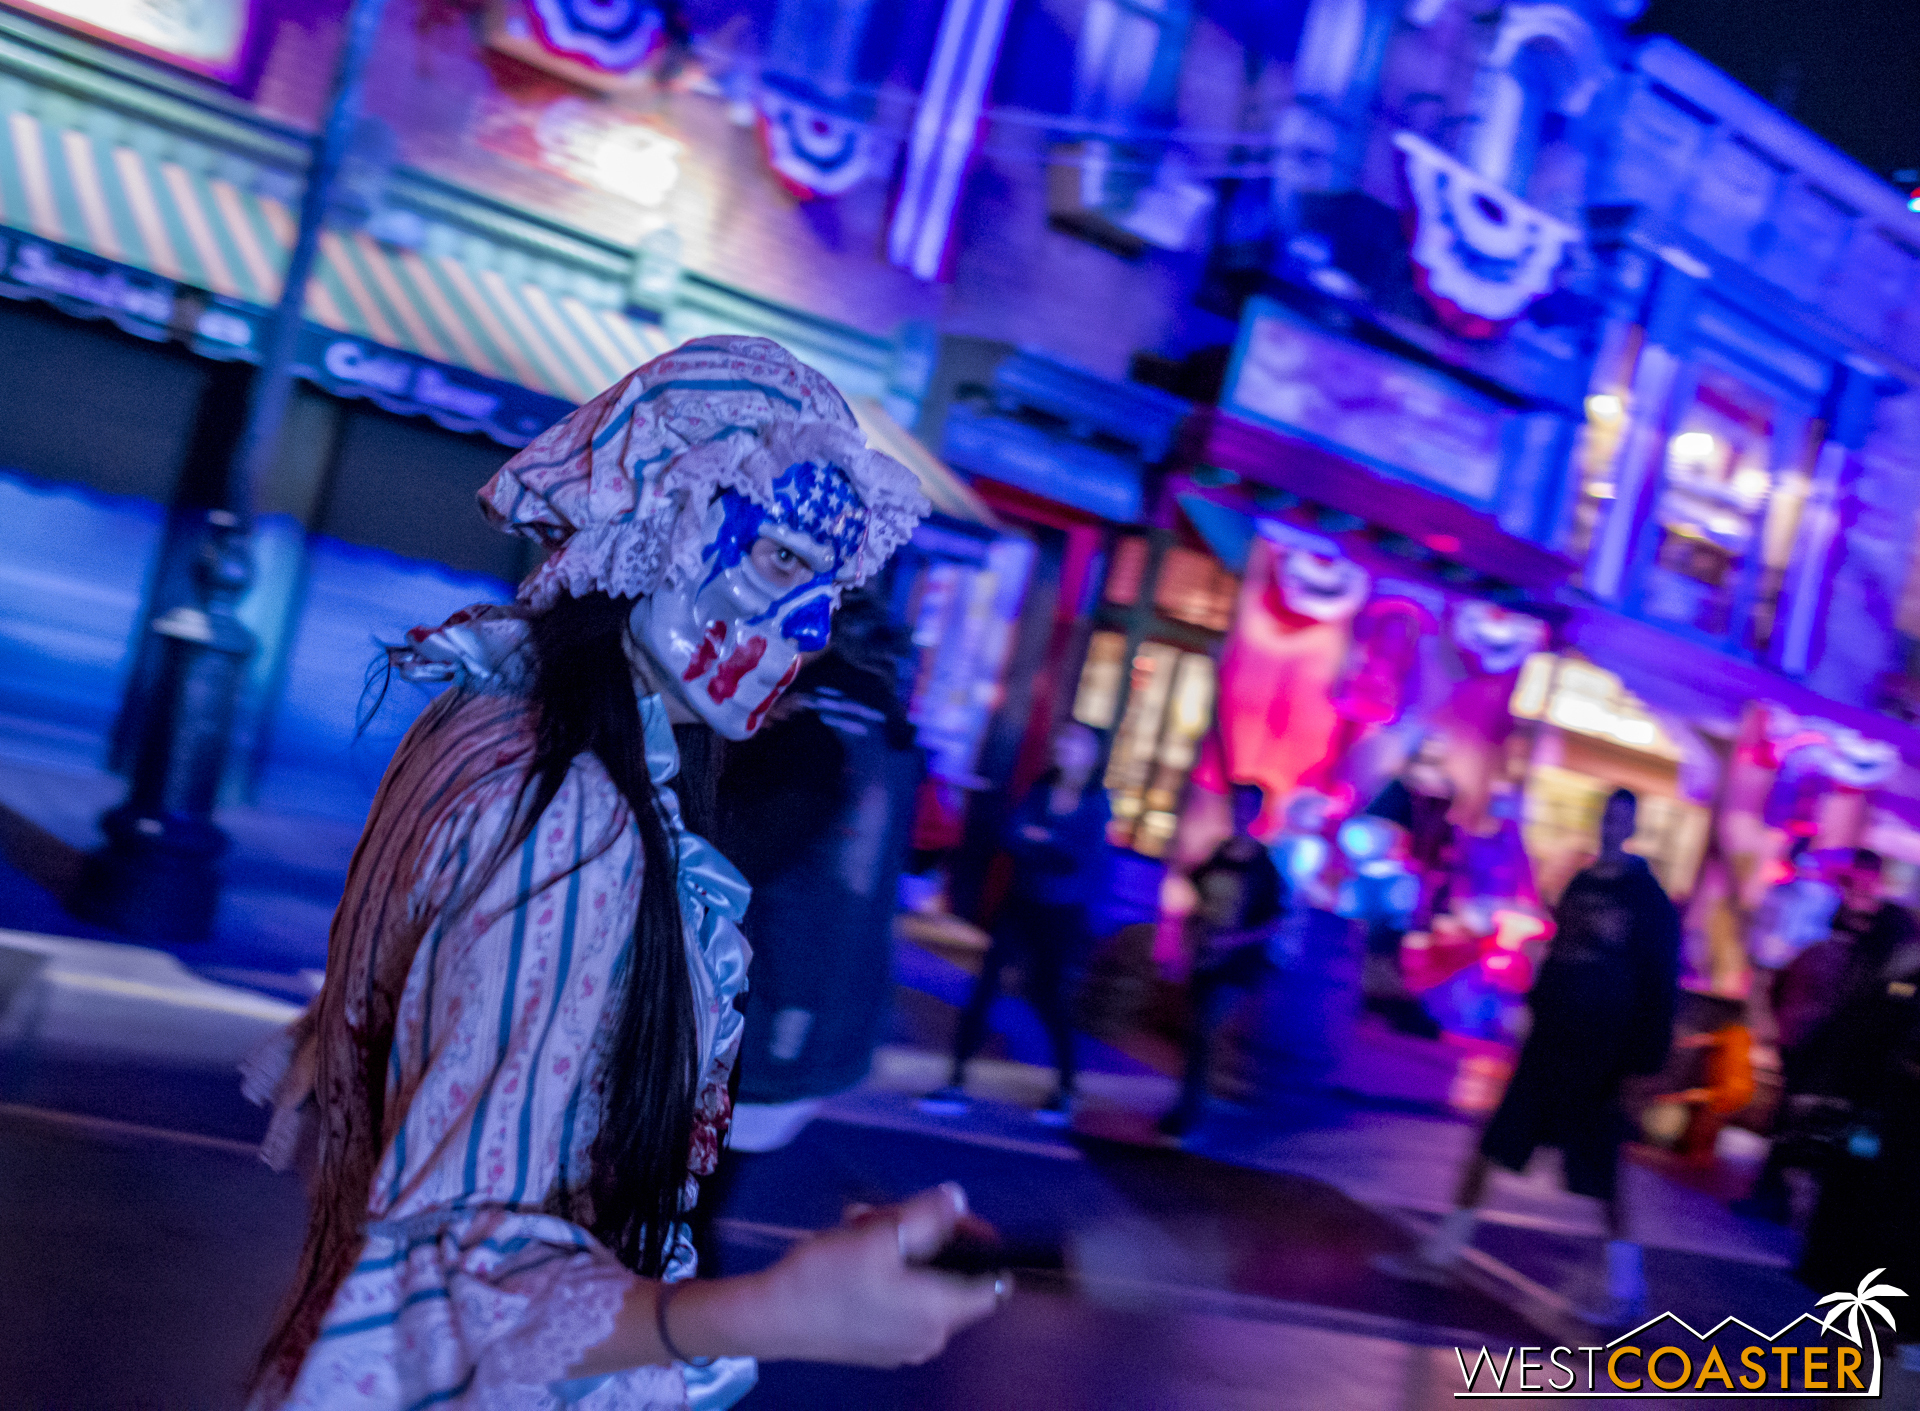 Of course, there have to be street scareactors to make this worthwhile, and plenty roam around here.